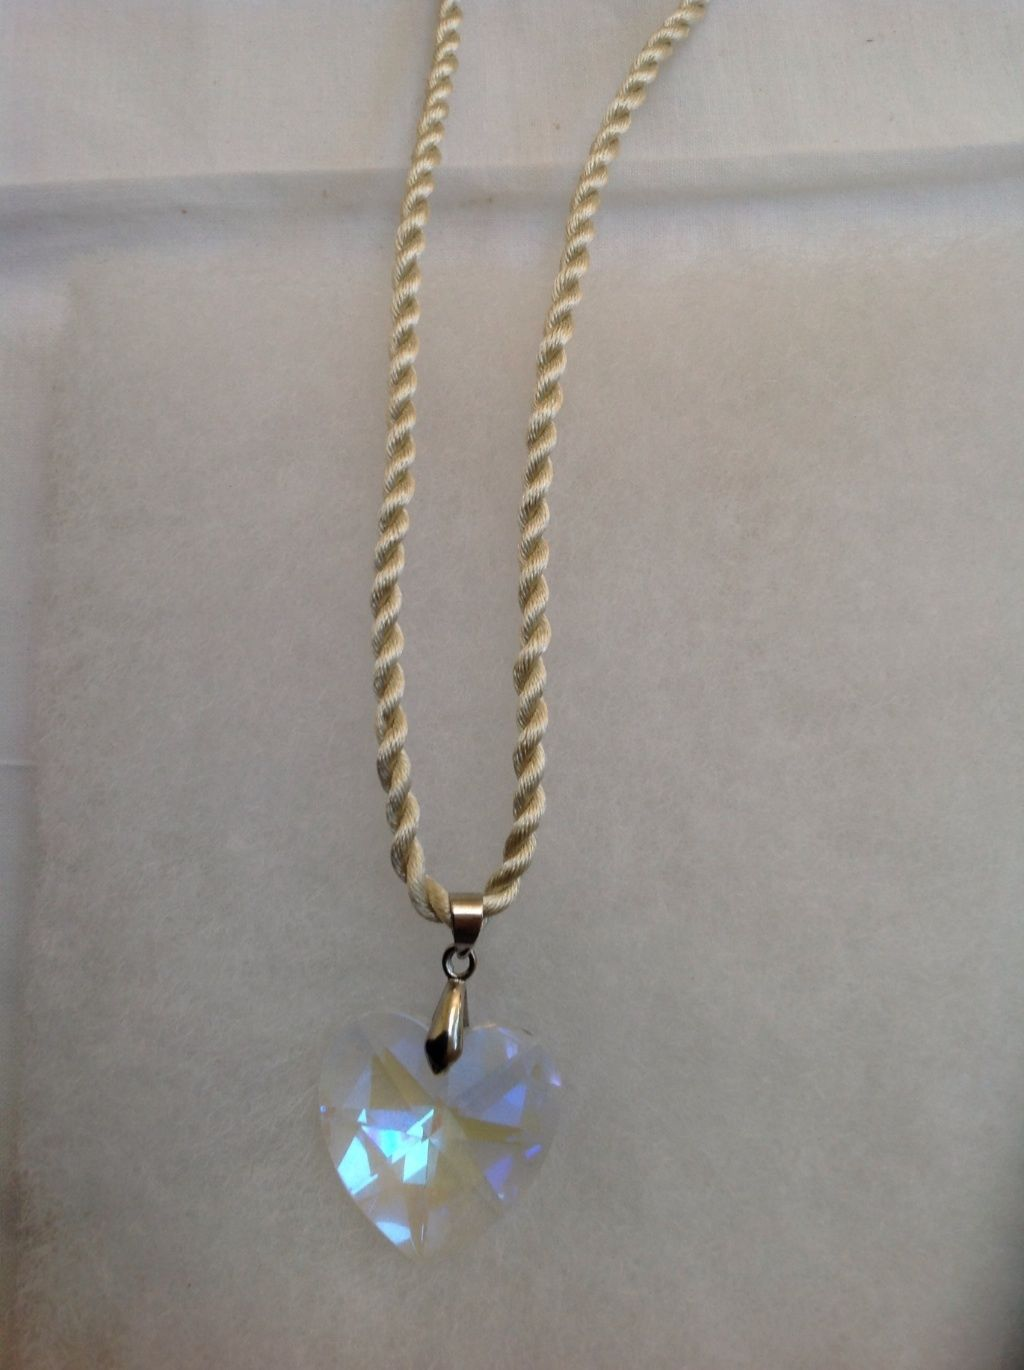 Swarovski heart 18KGP with free cord included.